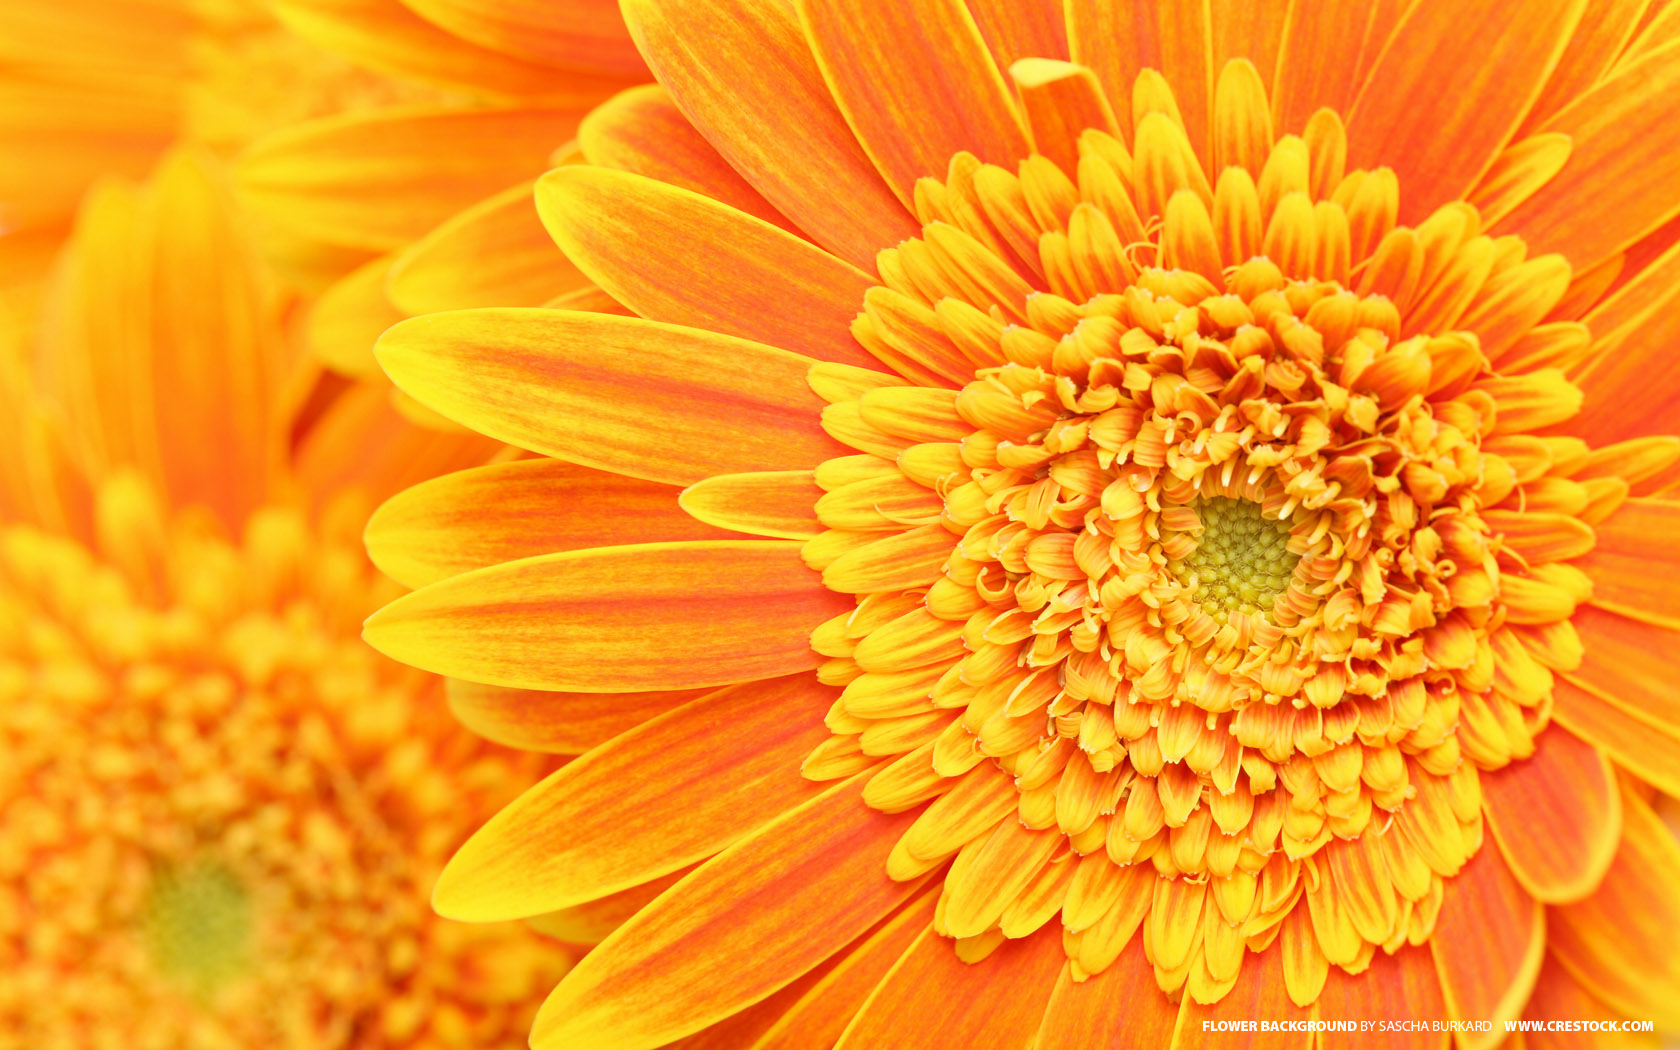 Orange Flower Backgrounds wallpaper | 1680x1050 | #23327